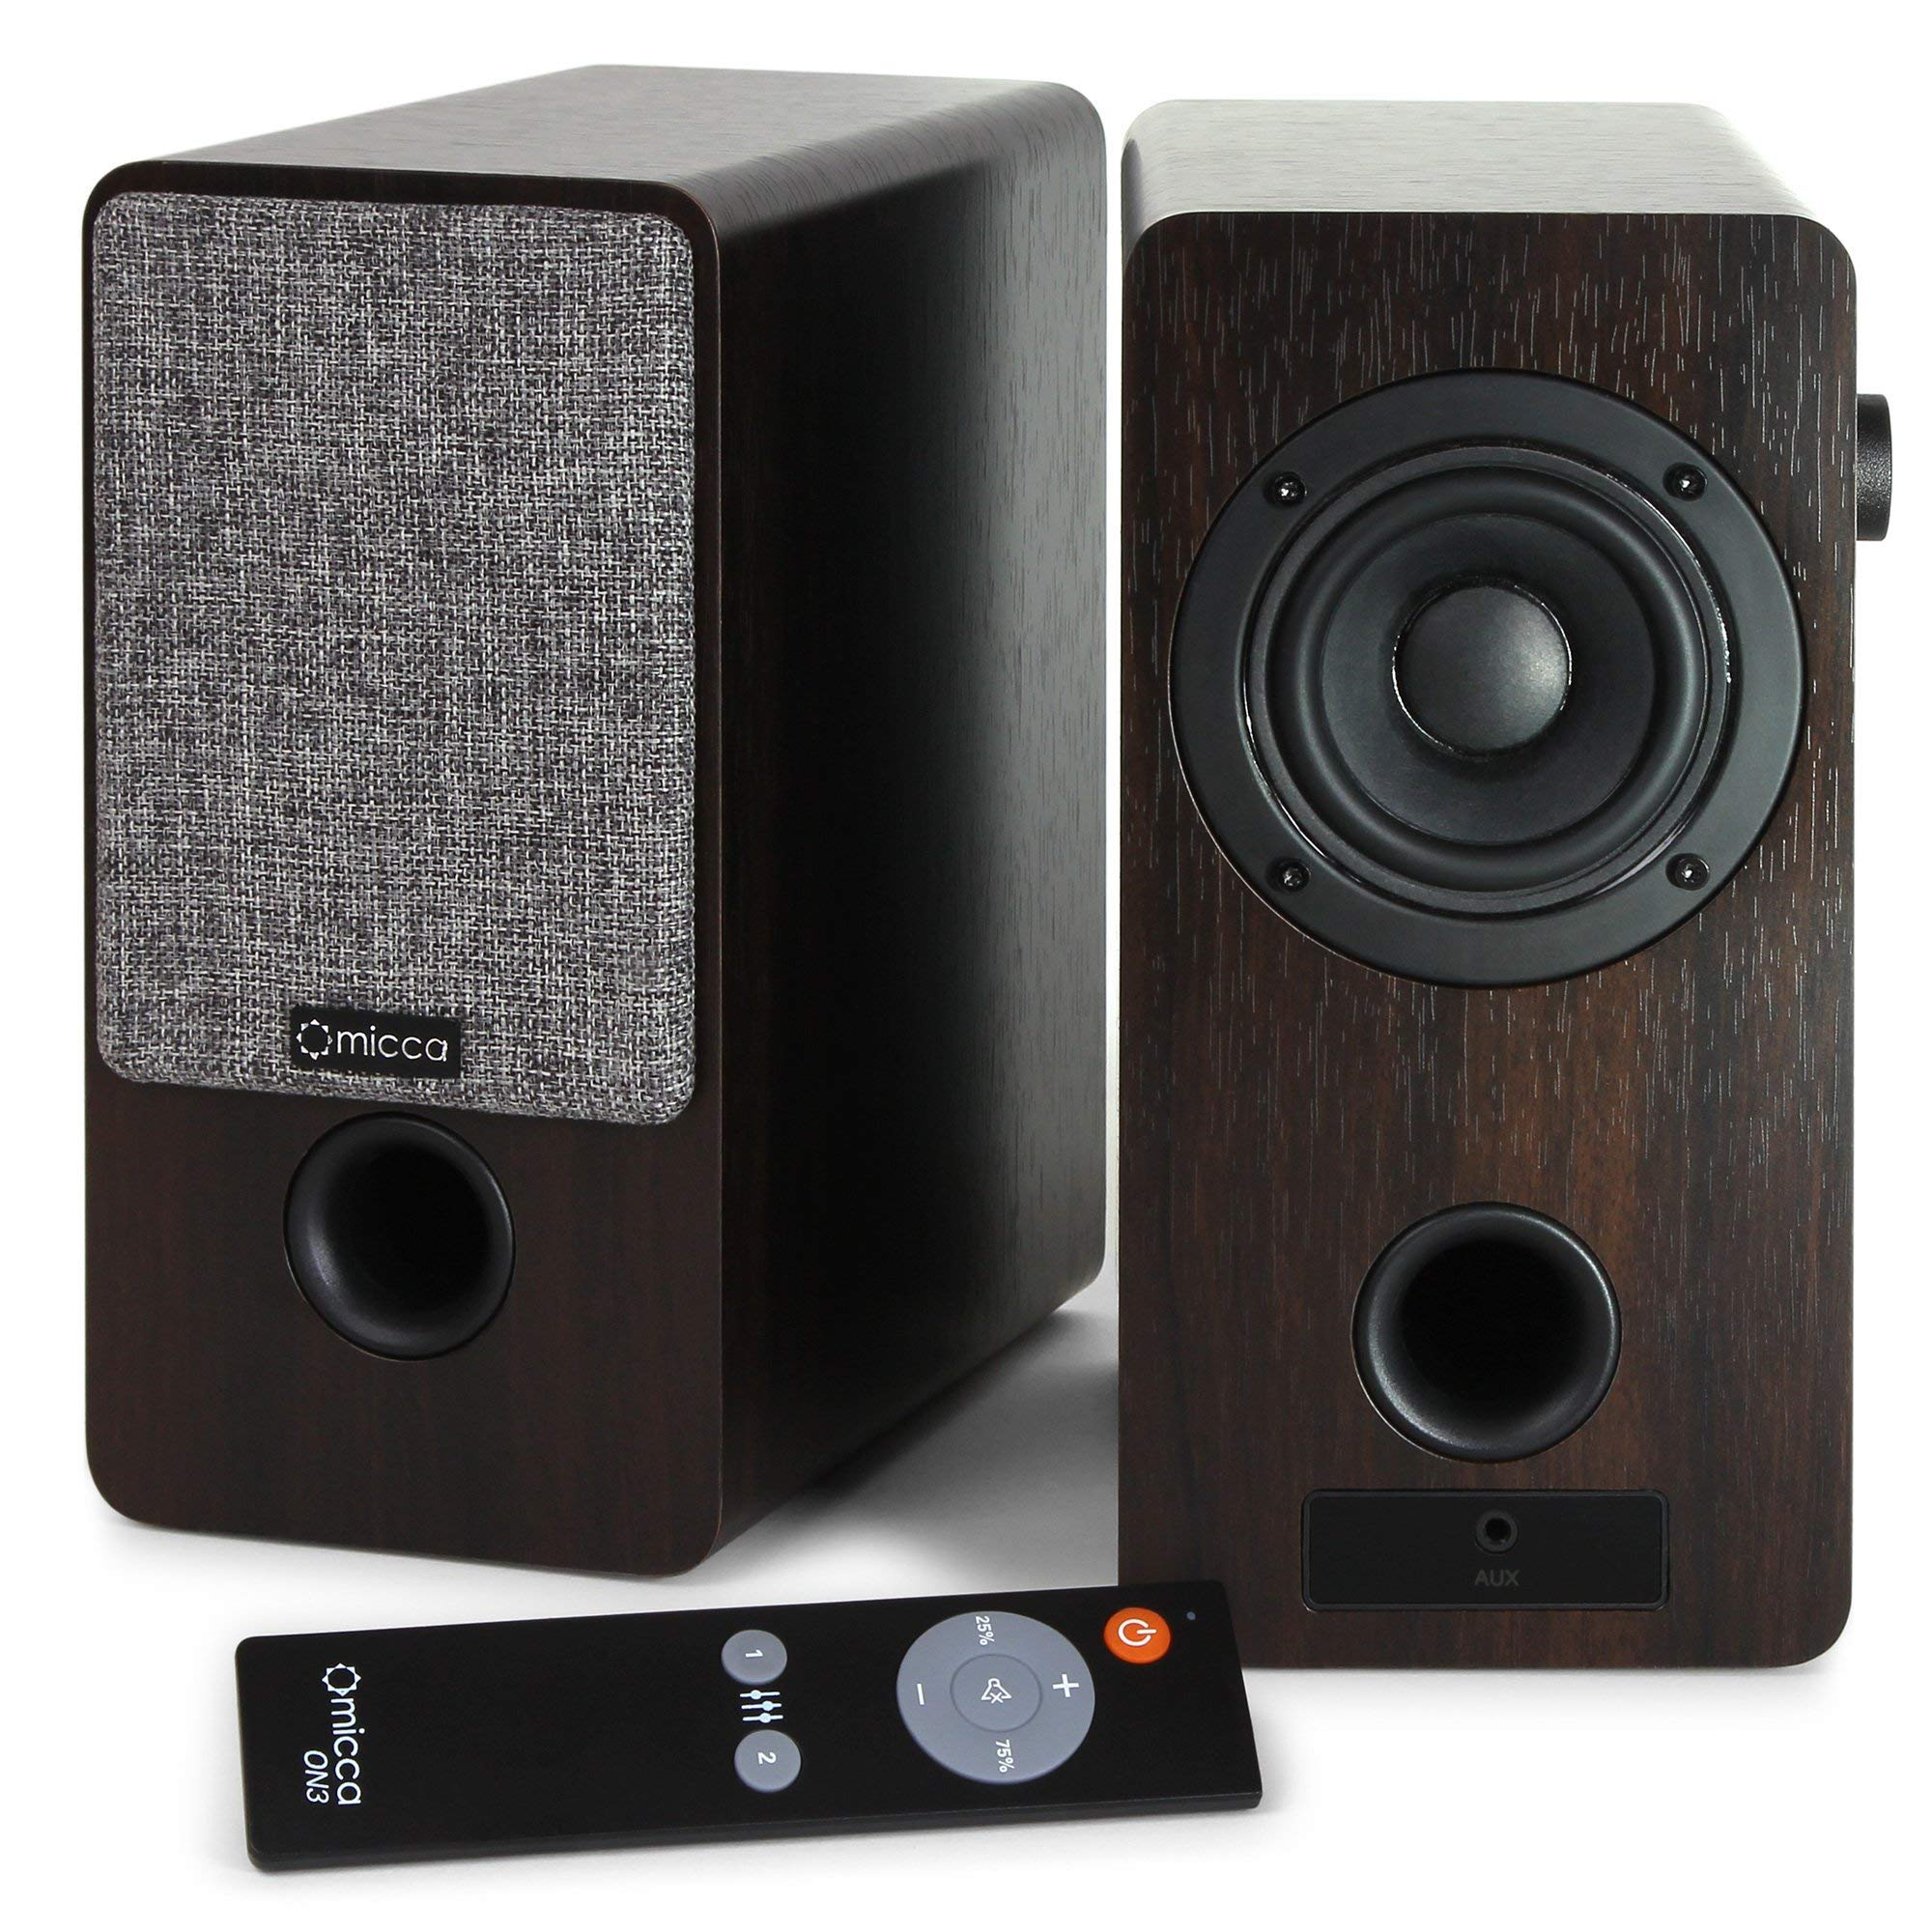 Micca ON3 3-Inch Powered Bookshelf Speakers with Remote Control, 48 Watts (24W x 2) RMS Power, Front and Rear Input Jacks (Renewed)